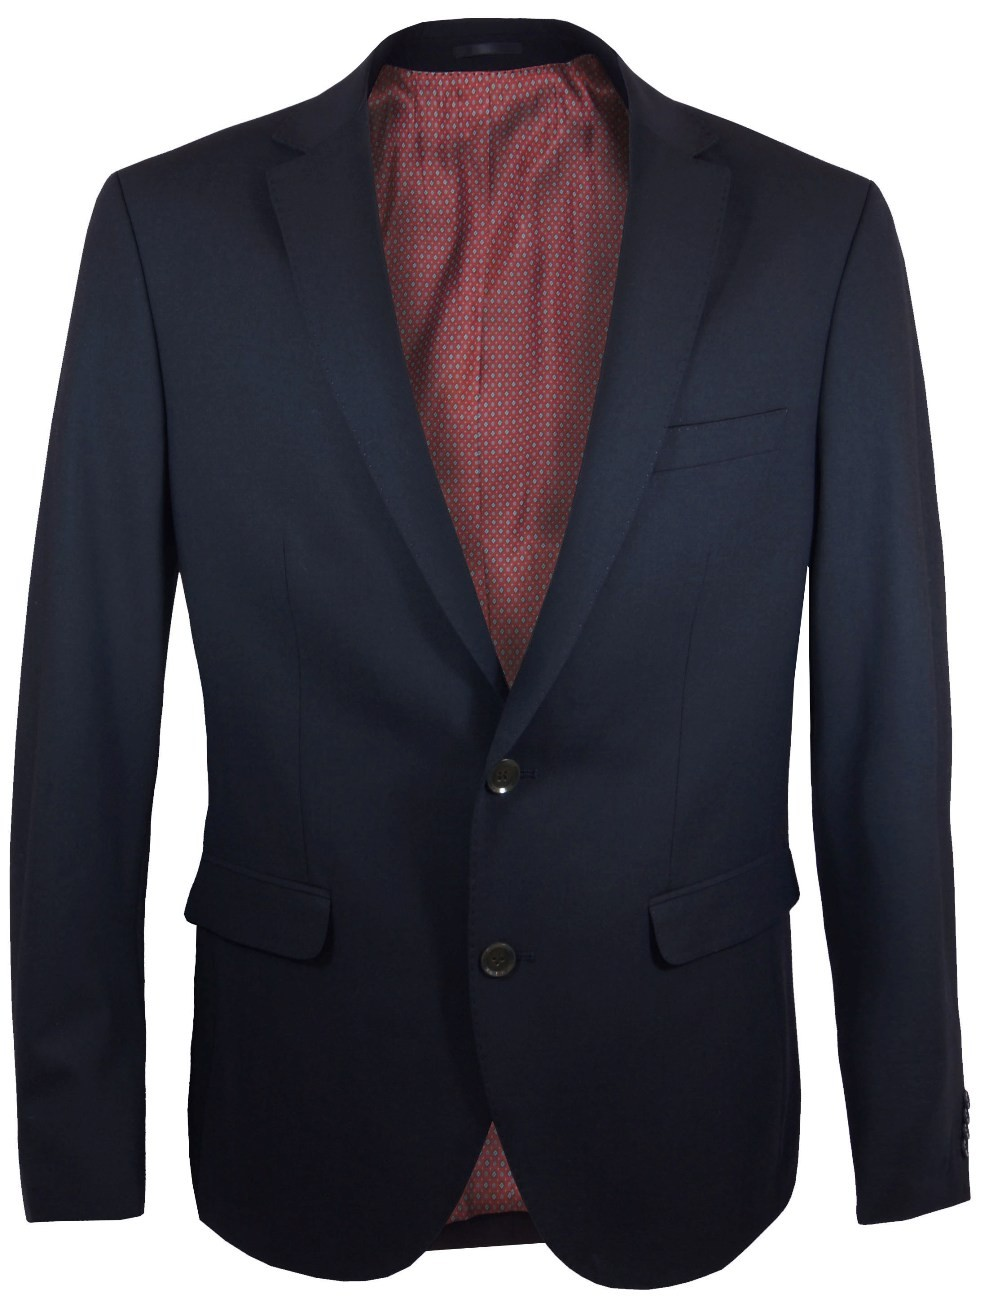 Mens dress suit blue jacket